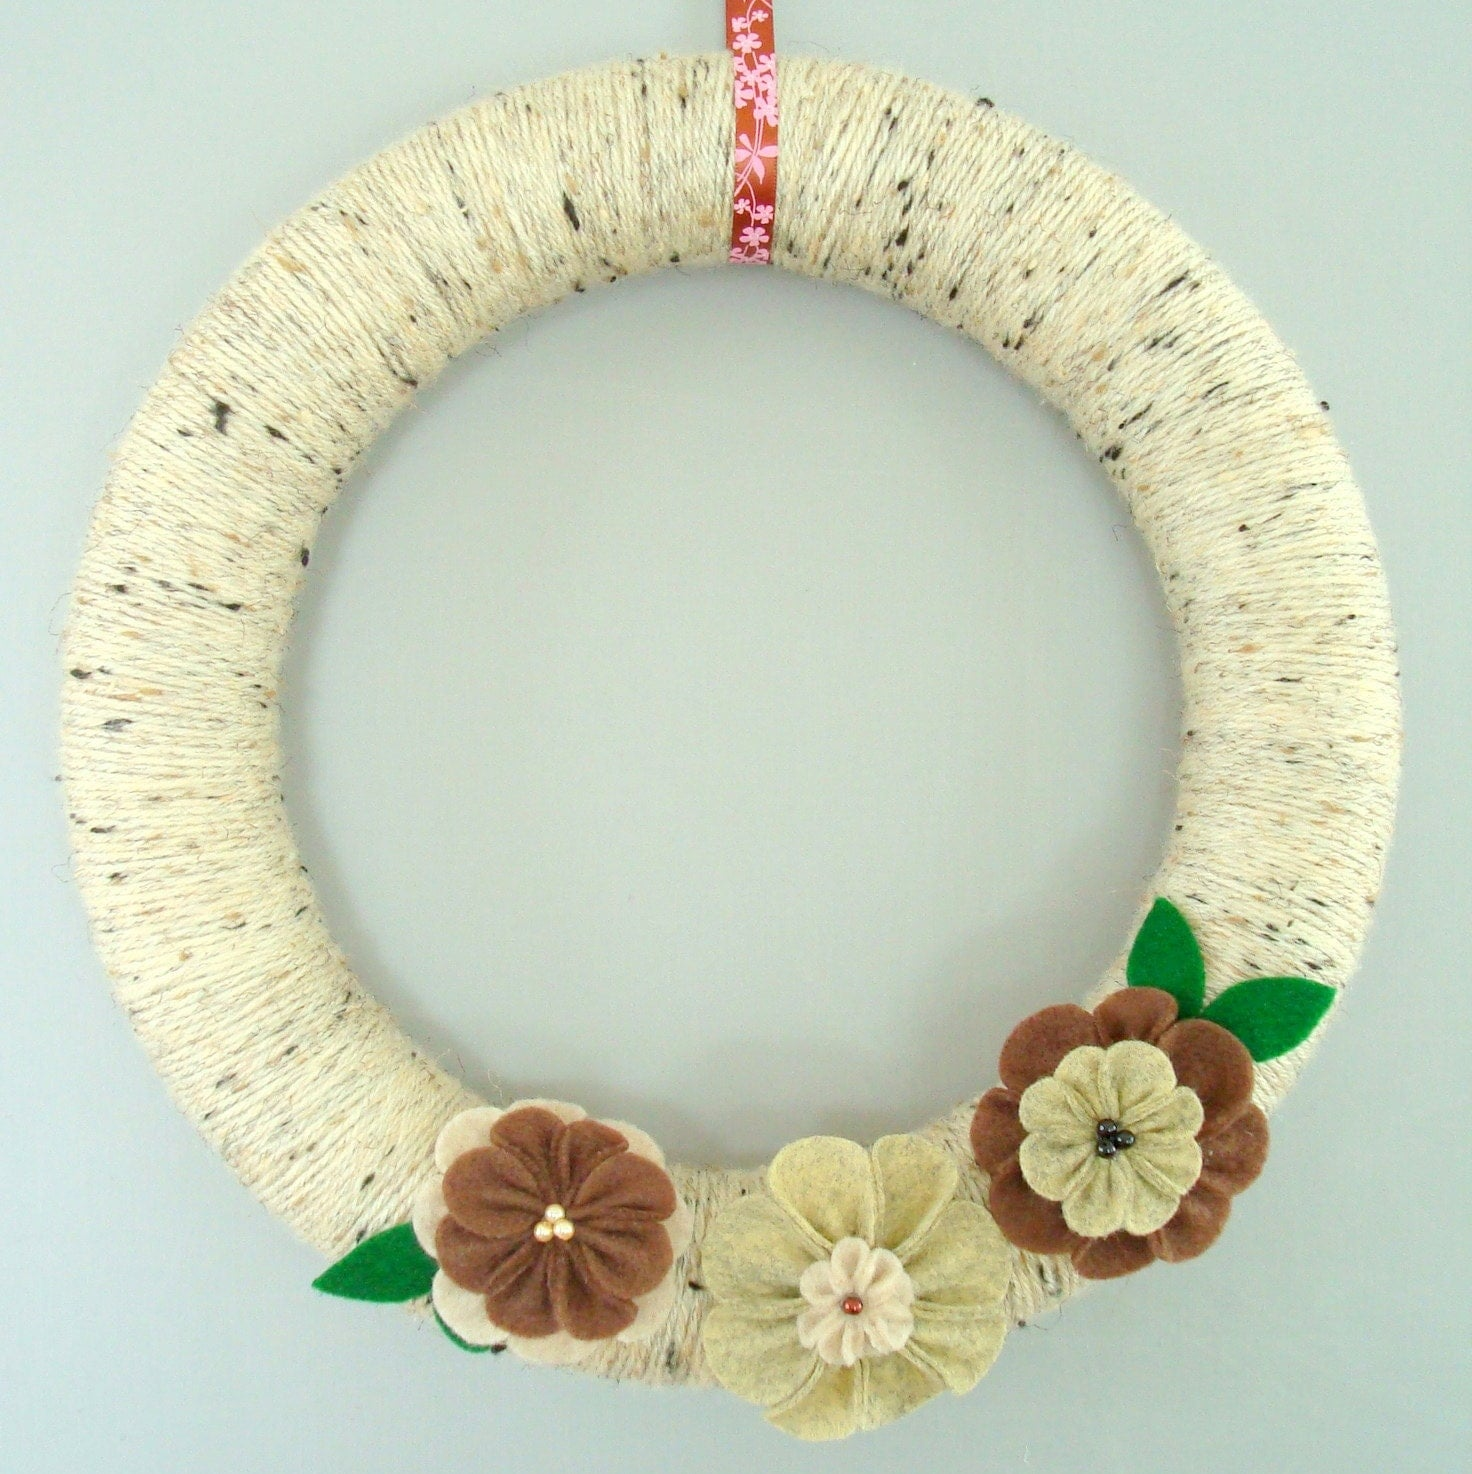 Summer wreath Yarn and Felt Flowers - Oatmeal, Beige, Green, Brown - Warm oatmeal and peppermint tea